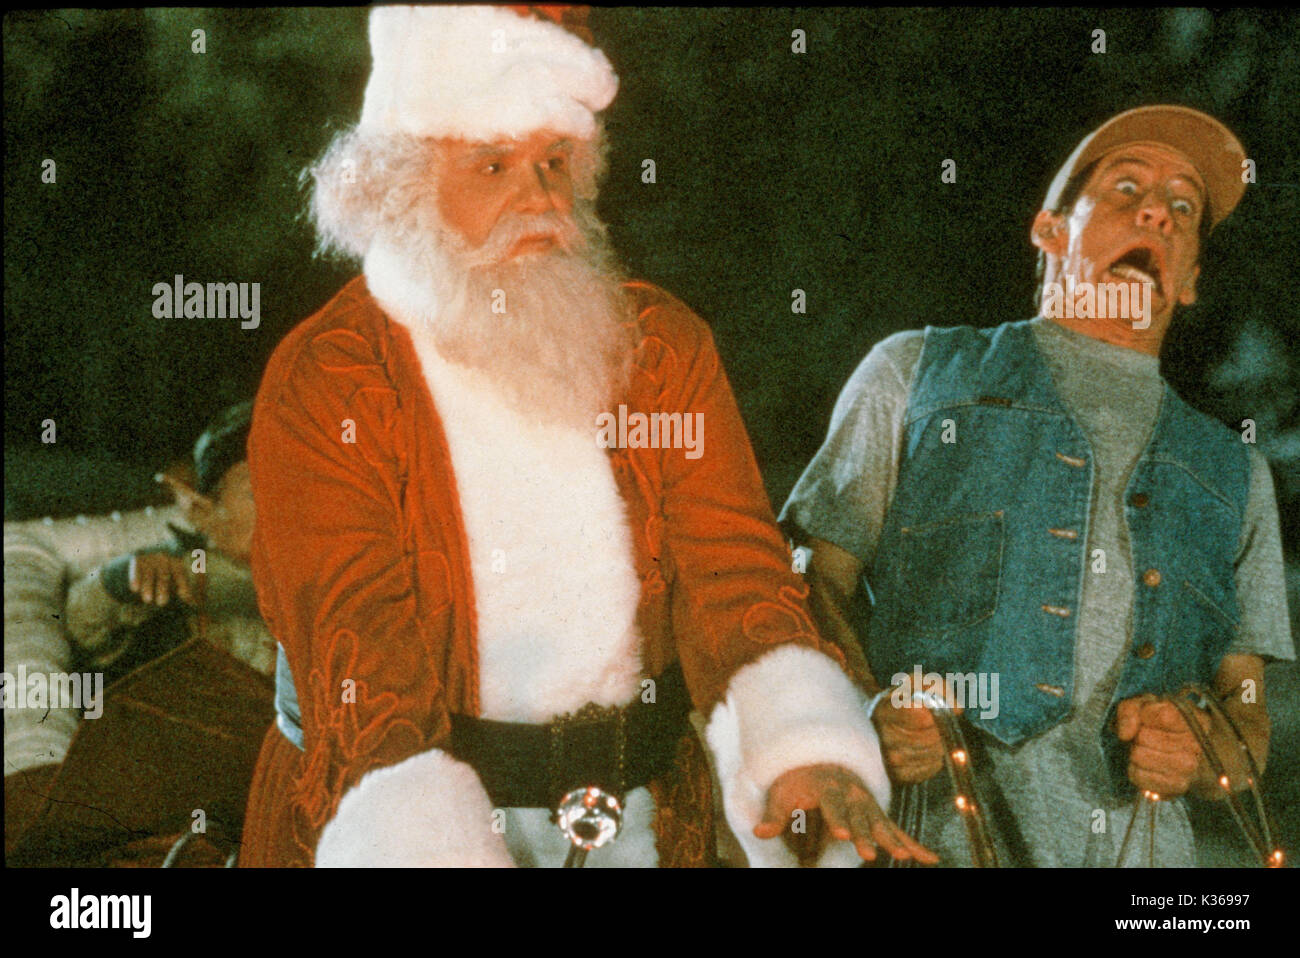 ERNEST SAVES CHRISTMAS OLIVER CLARK, JIM VARNEY PICTURE FROM THE ...